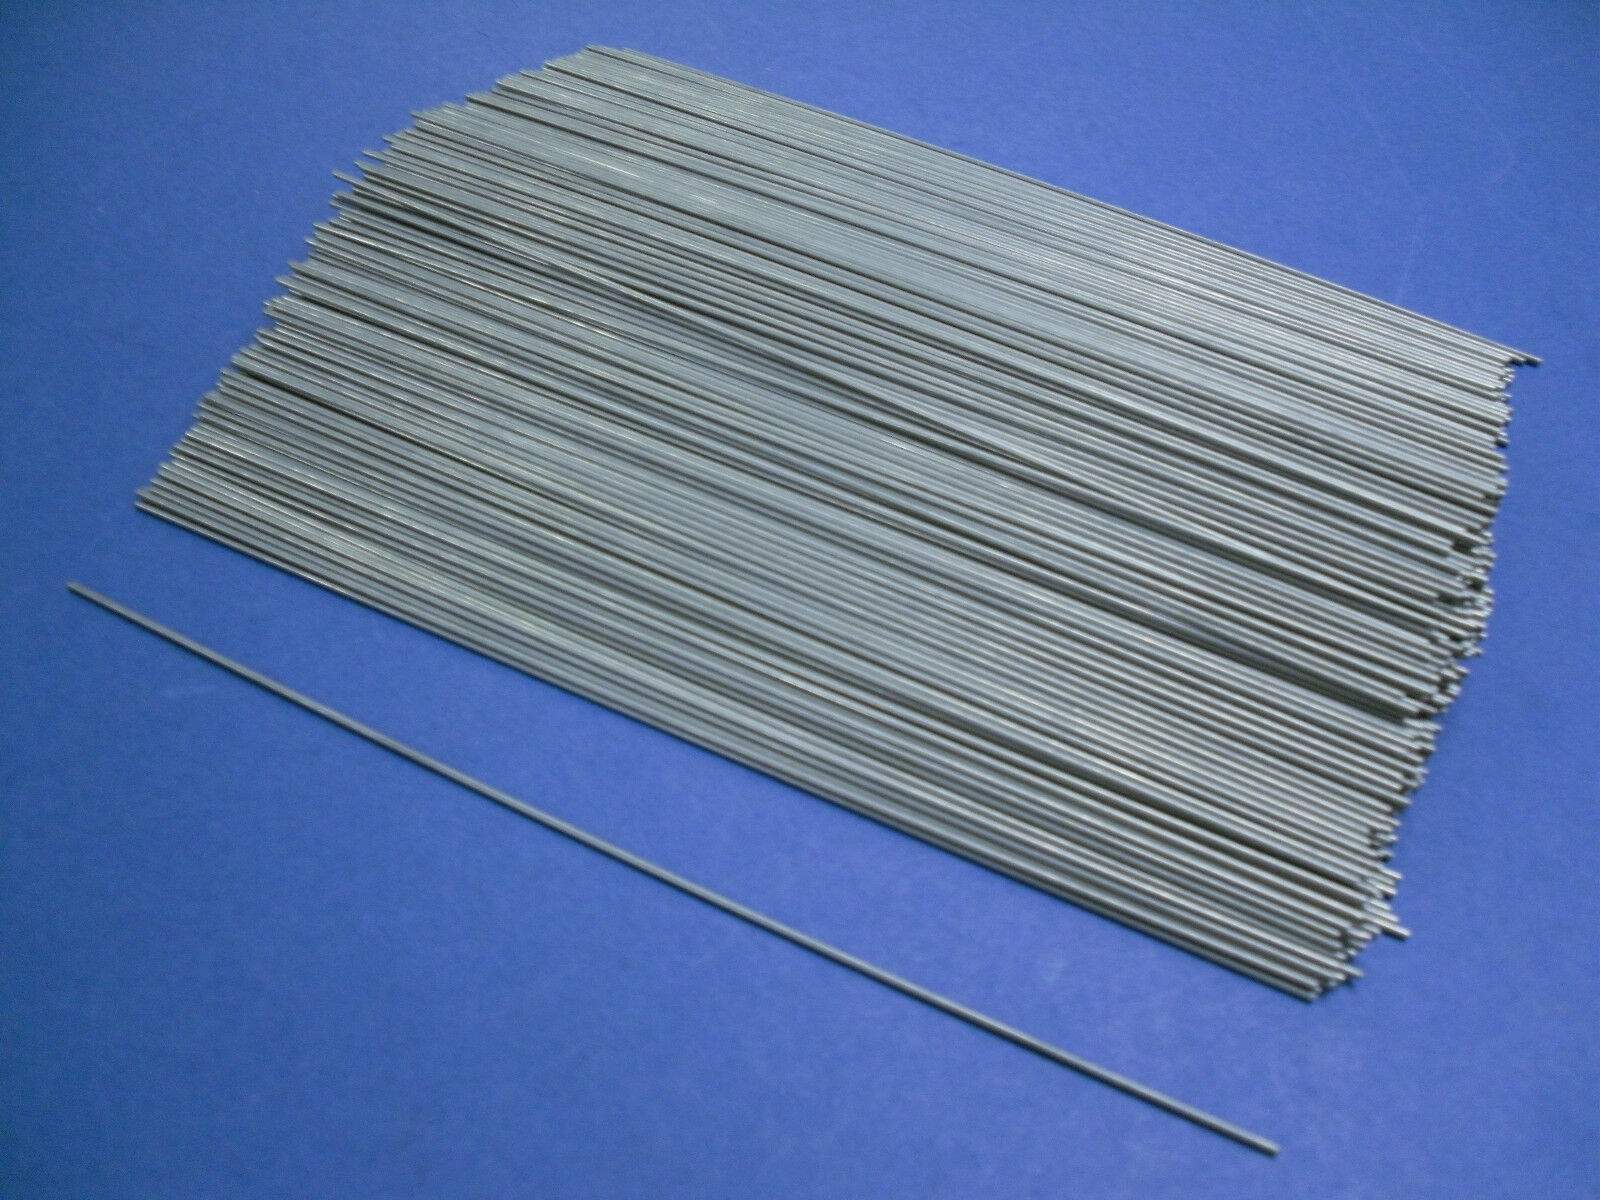 1000 6  STAINLESS STEEL WIRES FOR DCA AJUSTI 2 3 4 5 6 7 8 oz LEAD GRIP MOULDS